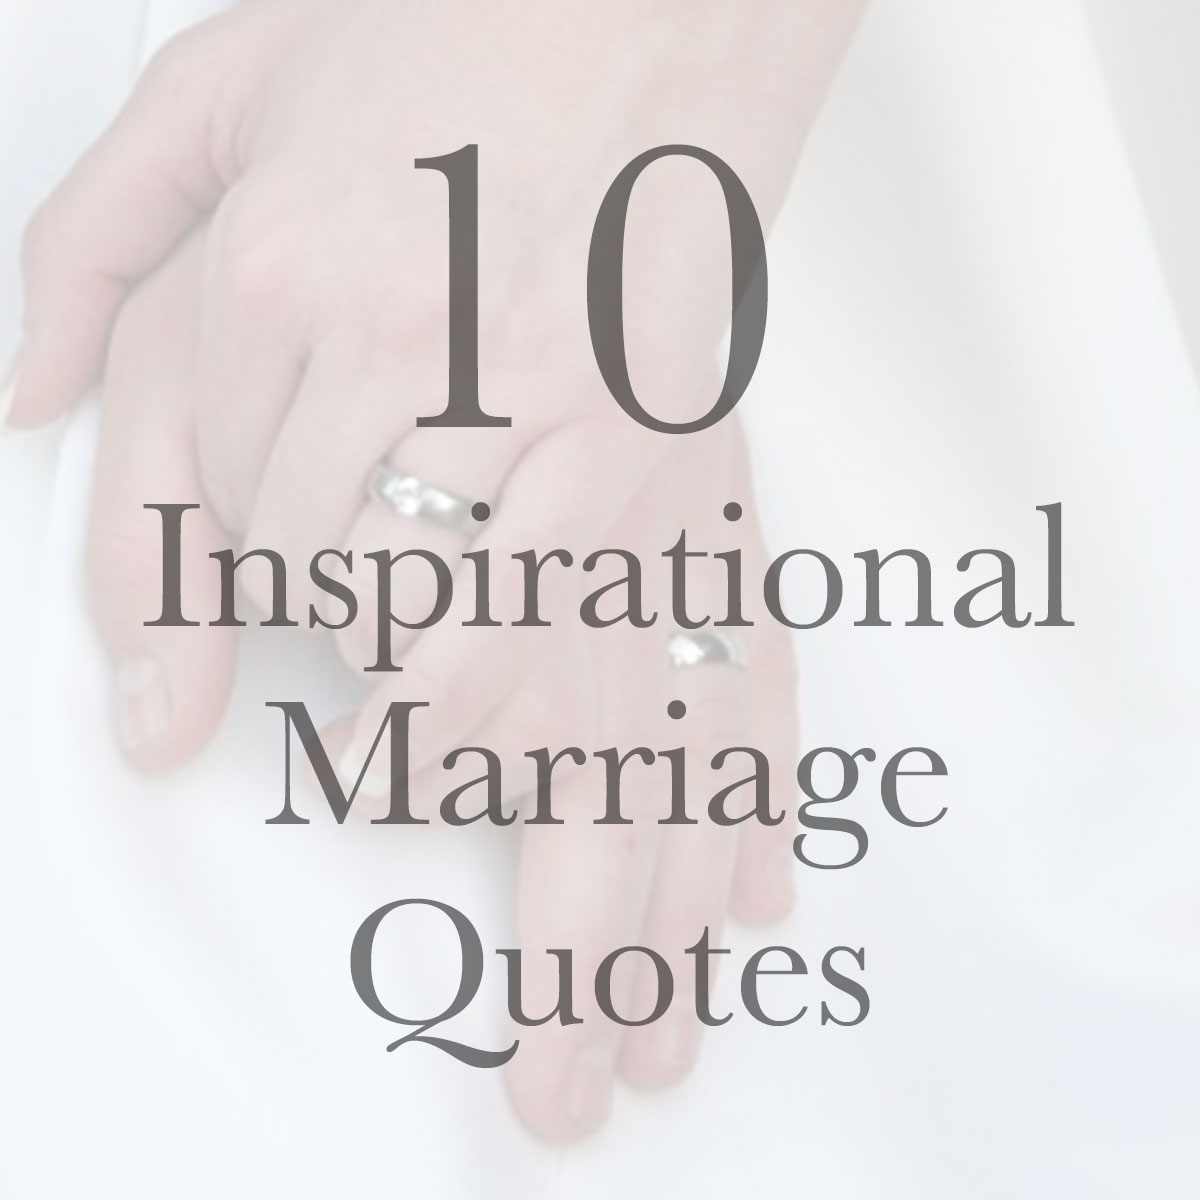 Just Married Quotes 10Marriagequotes